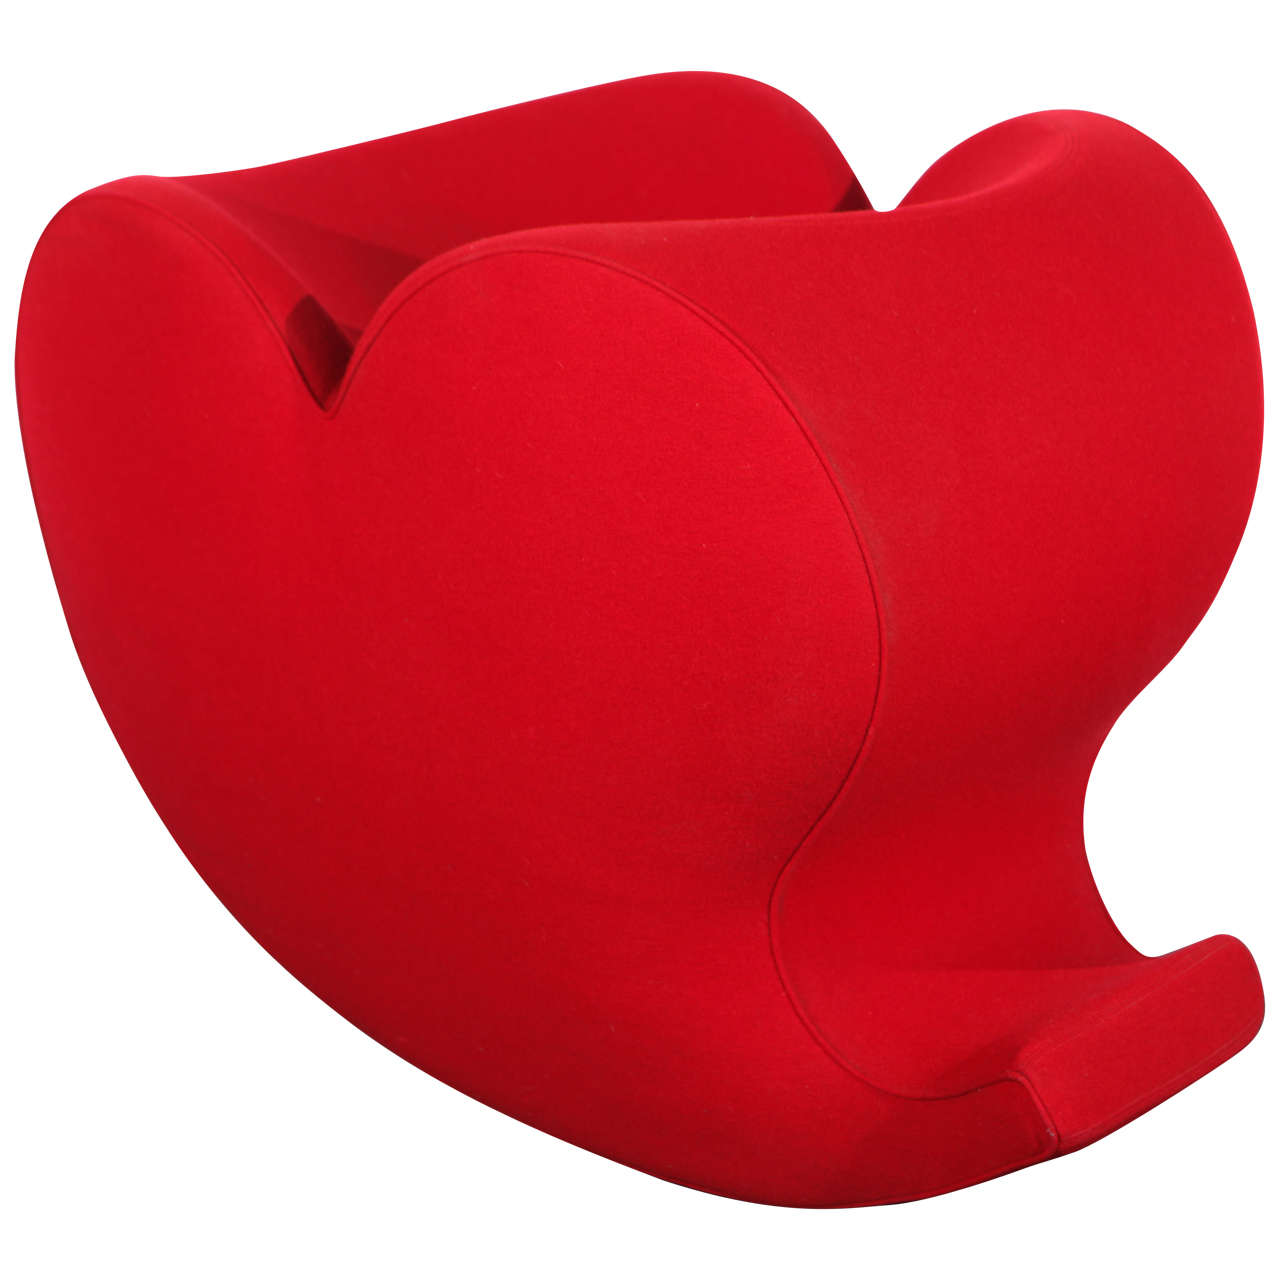 Lovely Soft Heart Rocking Chair by Ron Arad, Moroso